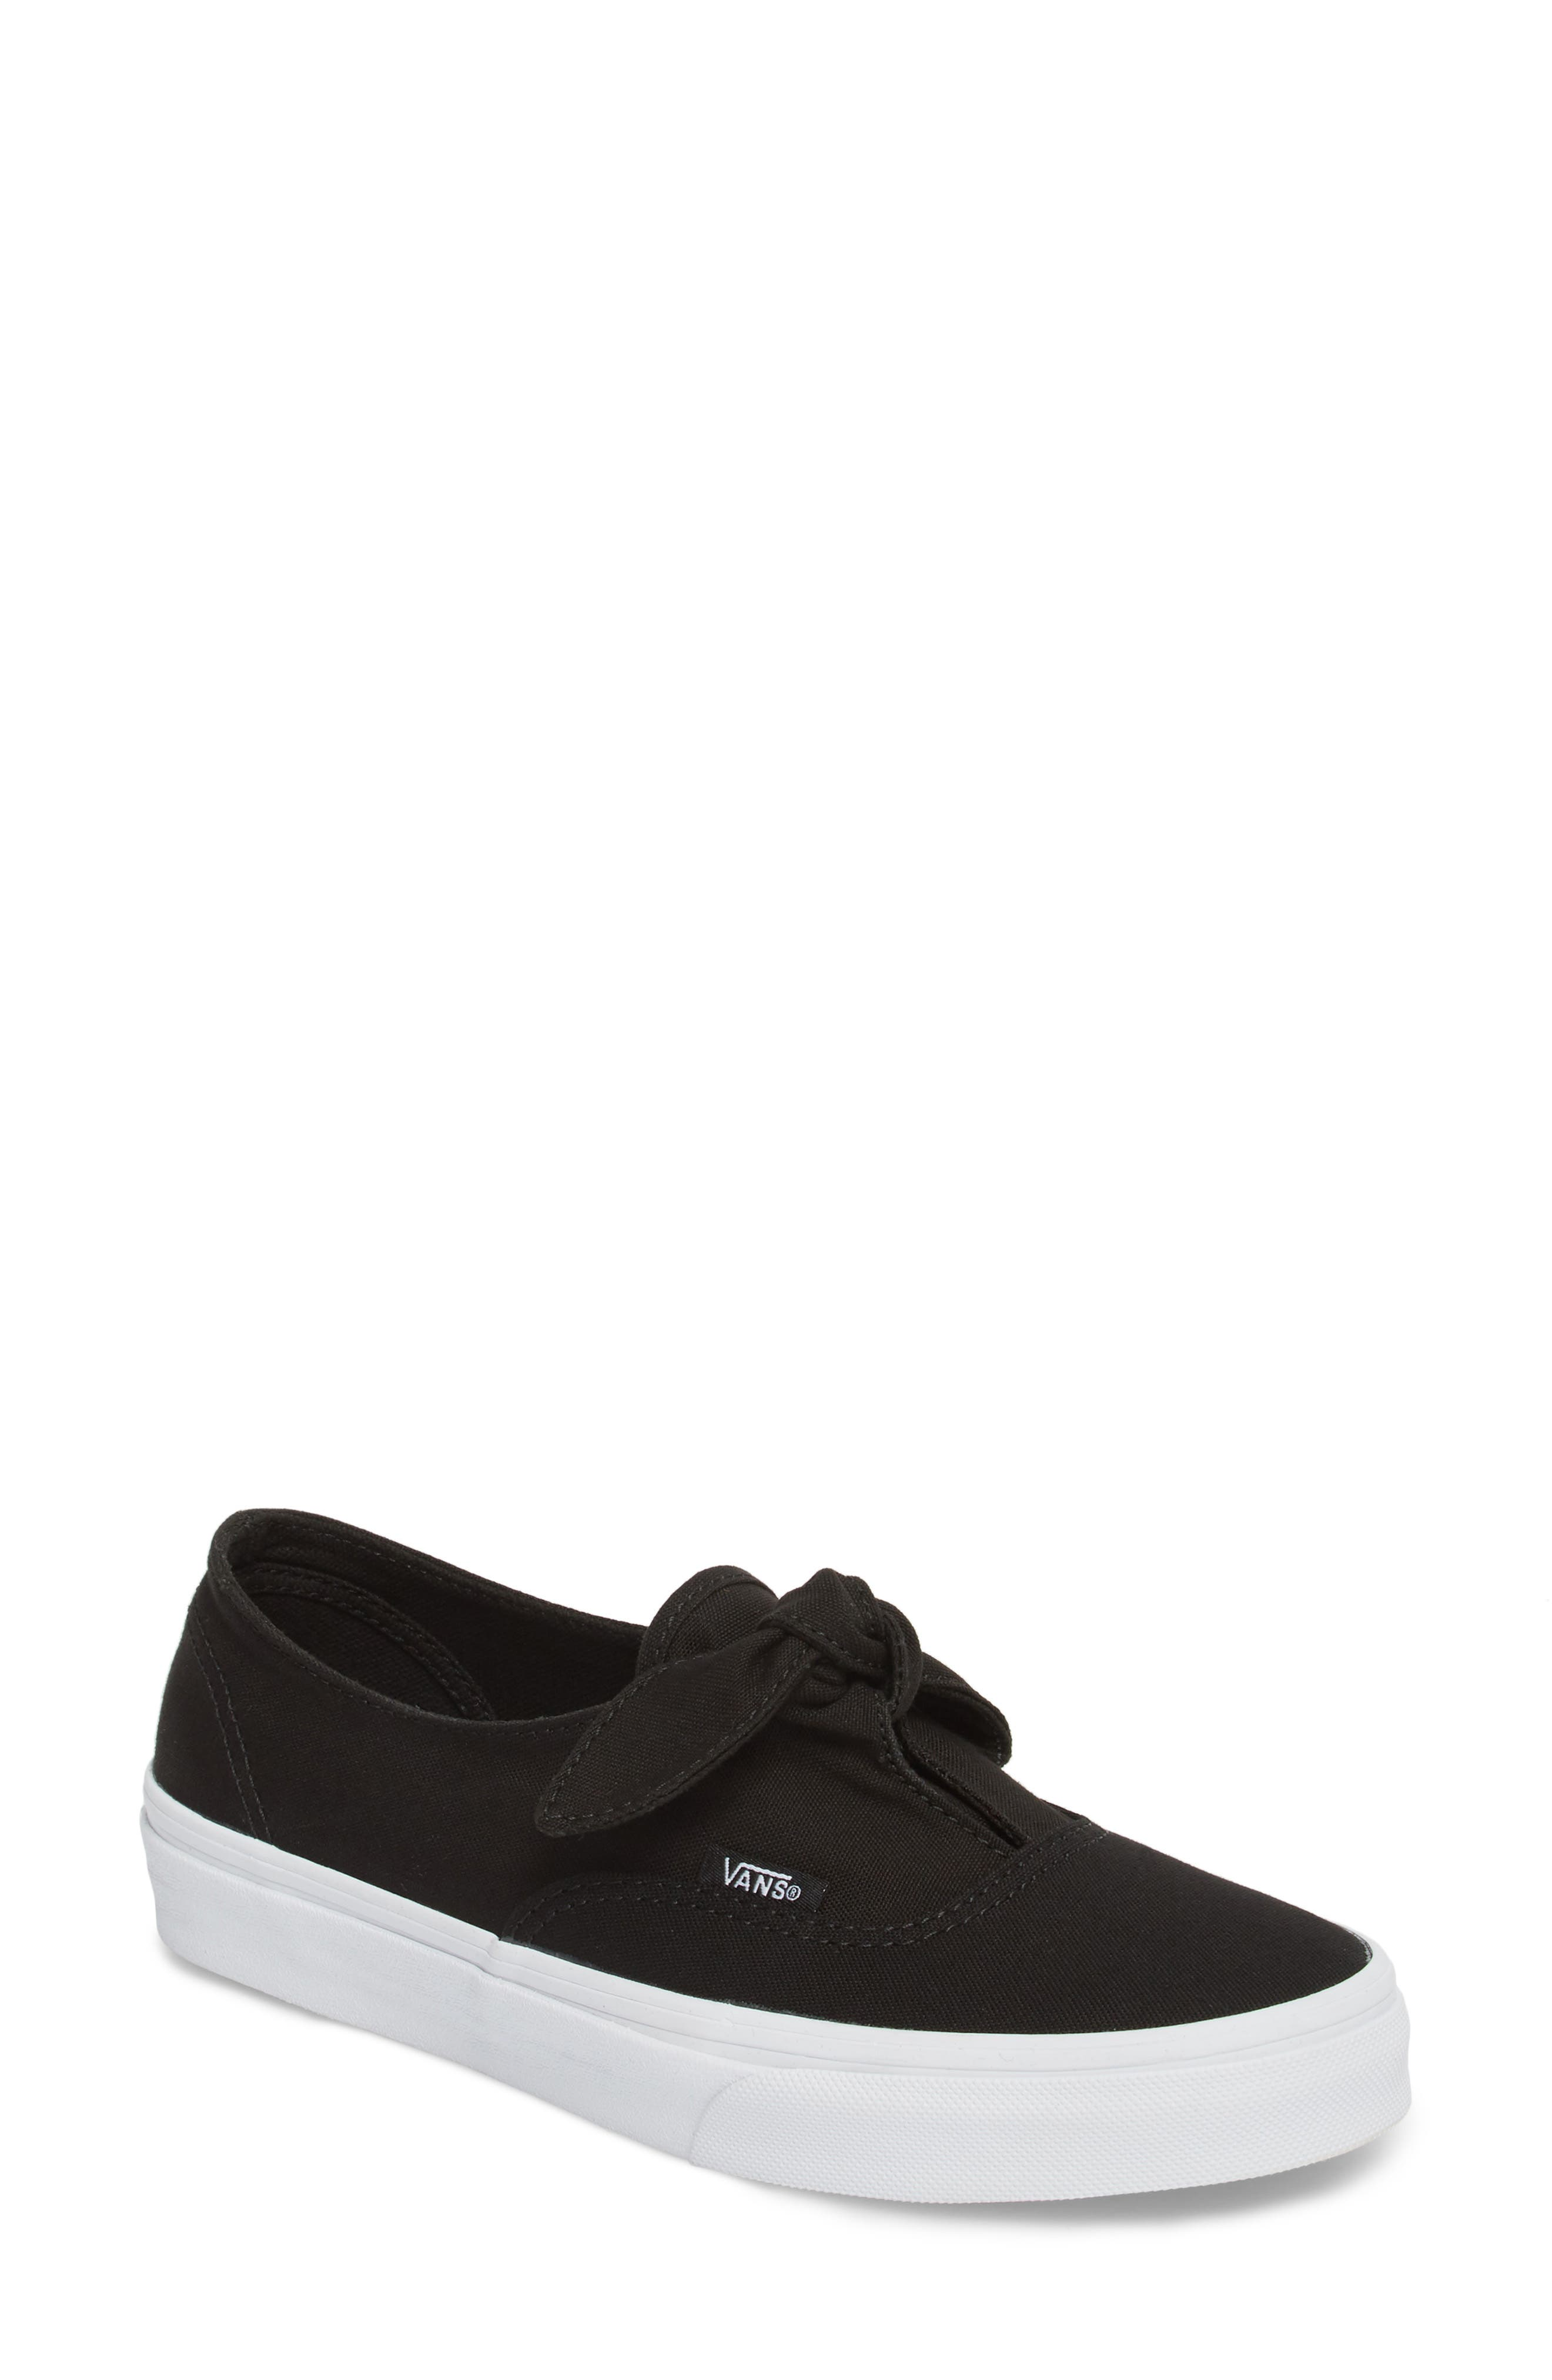 UA Authentic Knotted Slip-On Sneaker,                         Main,                         color, 001